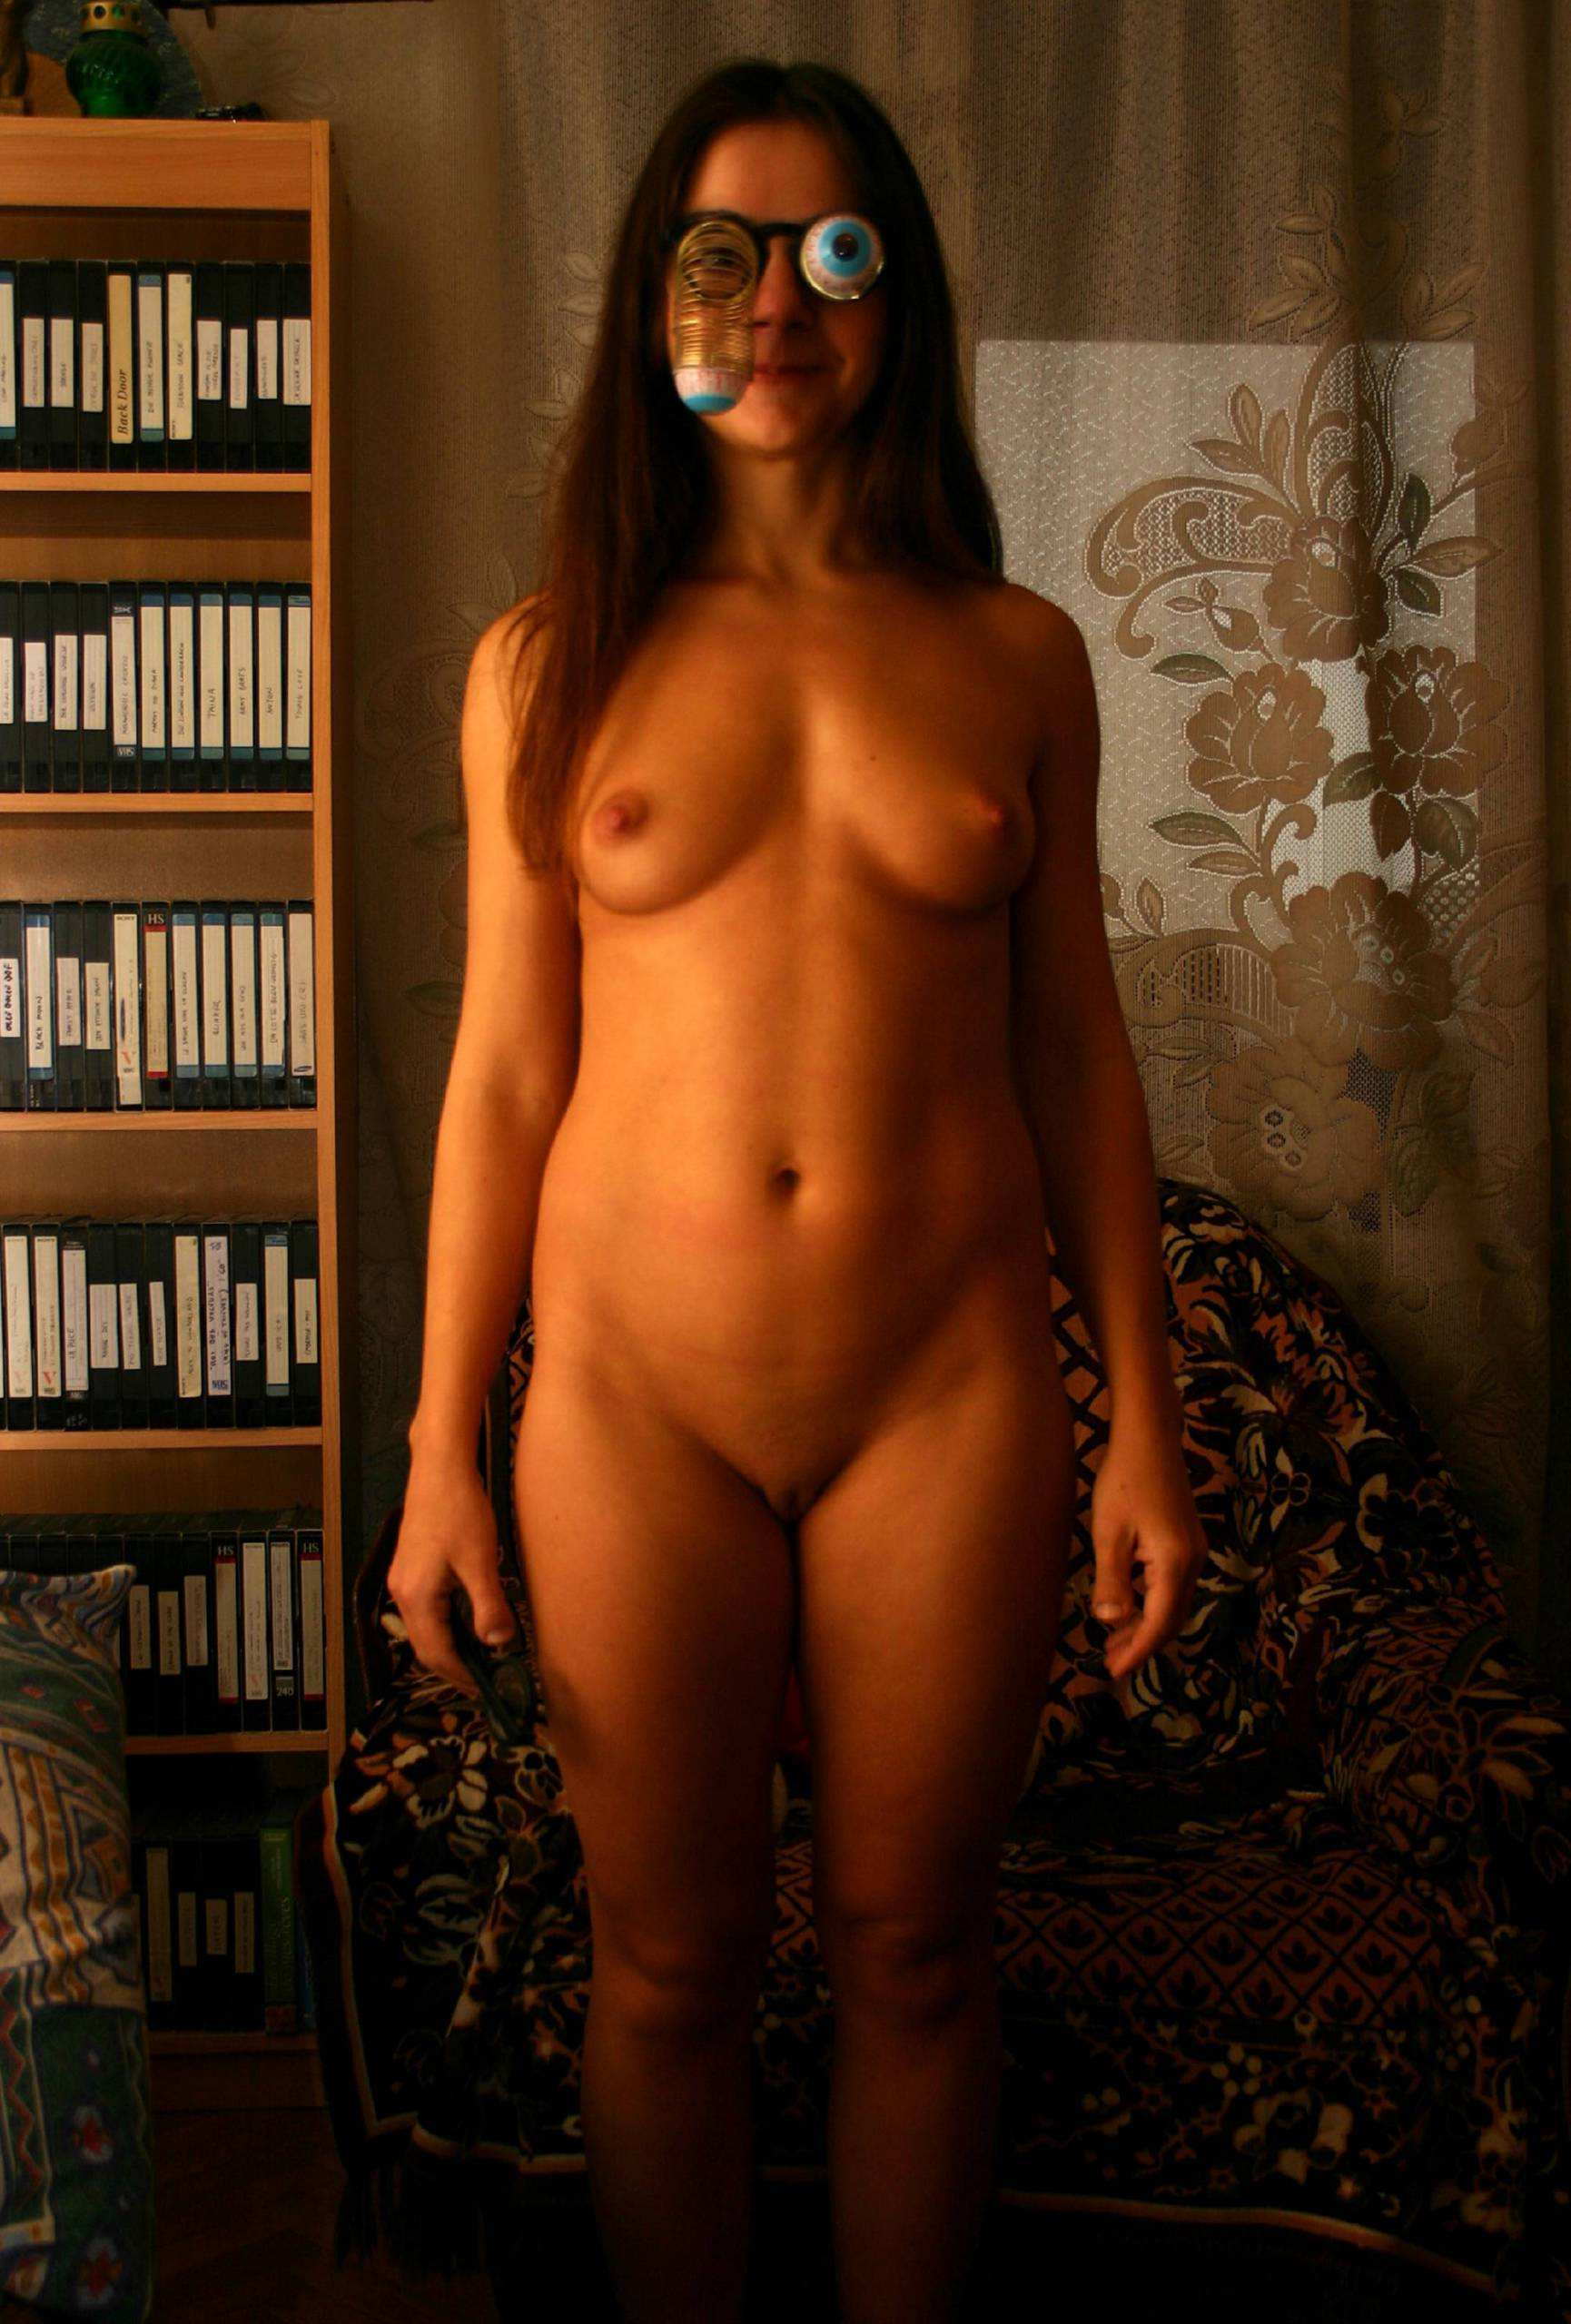 Nudist Photos The Artist Becomes Me - 2